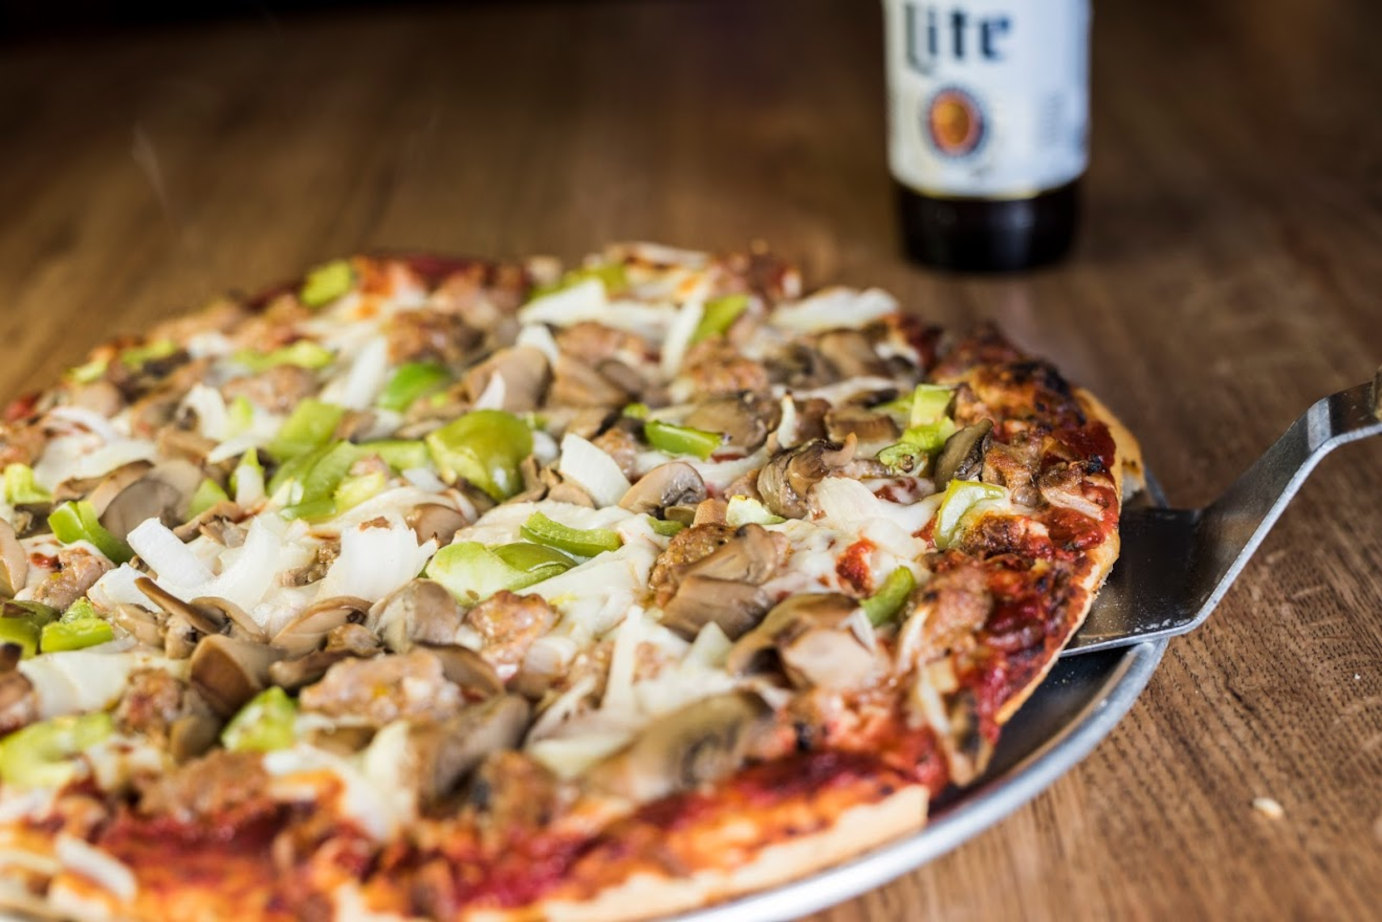 Funghi pizza and a beer